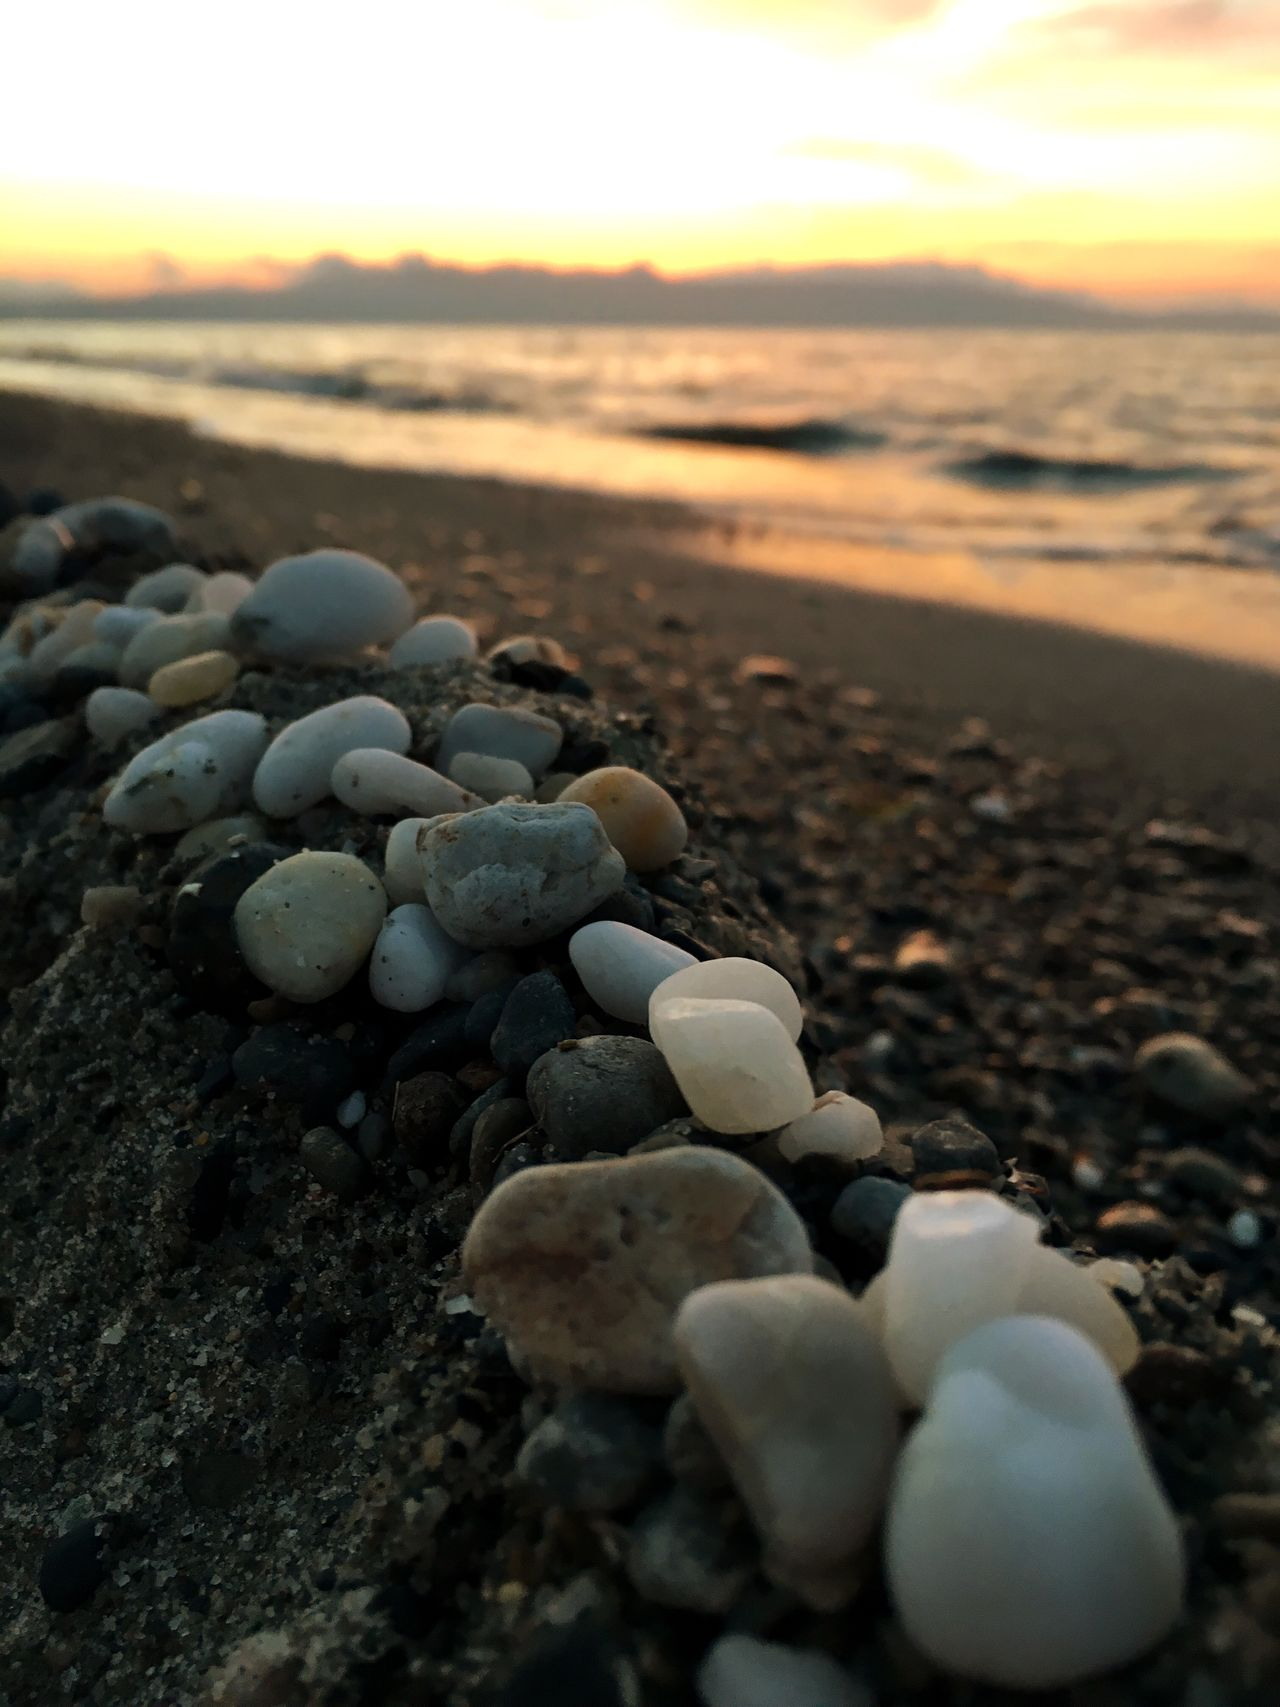 Live For The Story Greece Platanias Crete Sunset Sand Beach Sea Stones Focus On Foreground Cloudy Sunset #sun #clouds #skylovers #sky #nature #beautifulinnature #naturalbeauty #photography #landscape Shore Pebble Beach Water Outdoors Horizon Over Water Rock - Object Stone - Object Summer